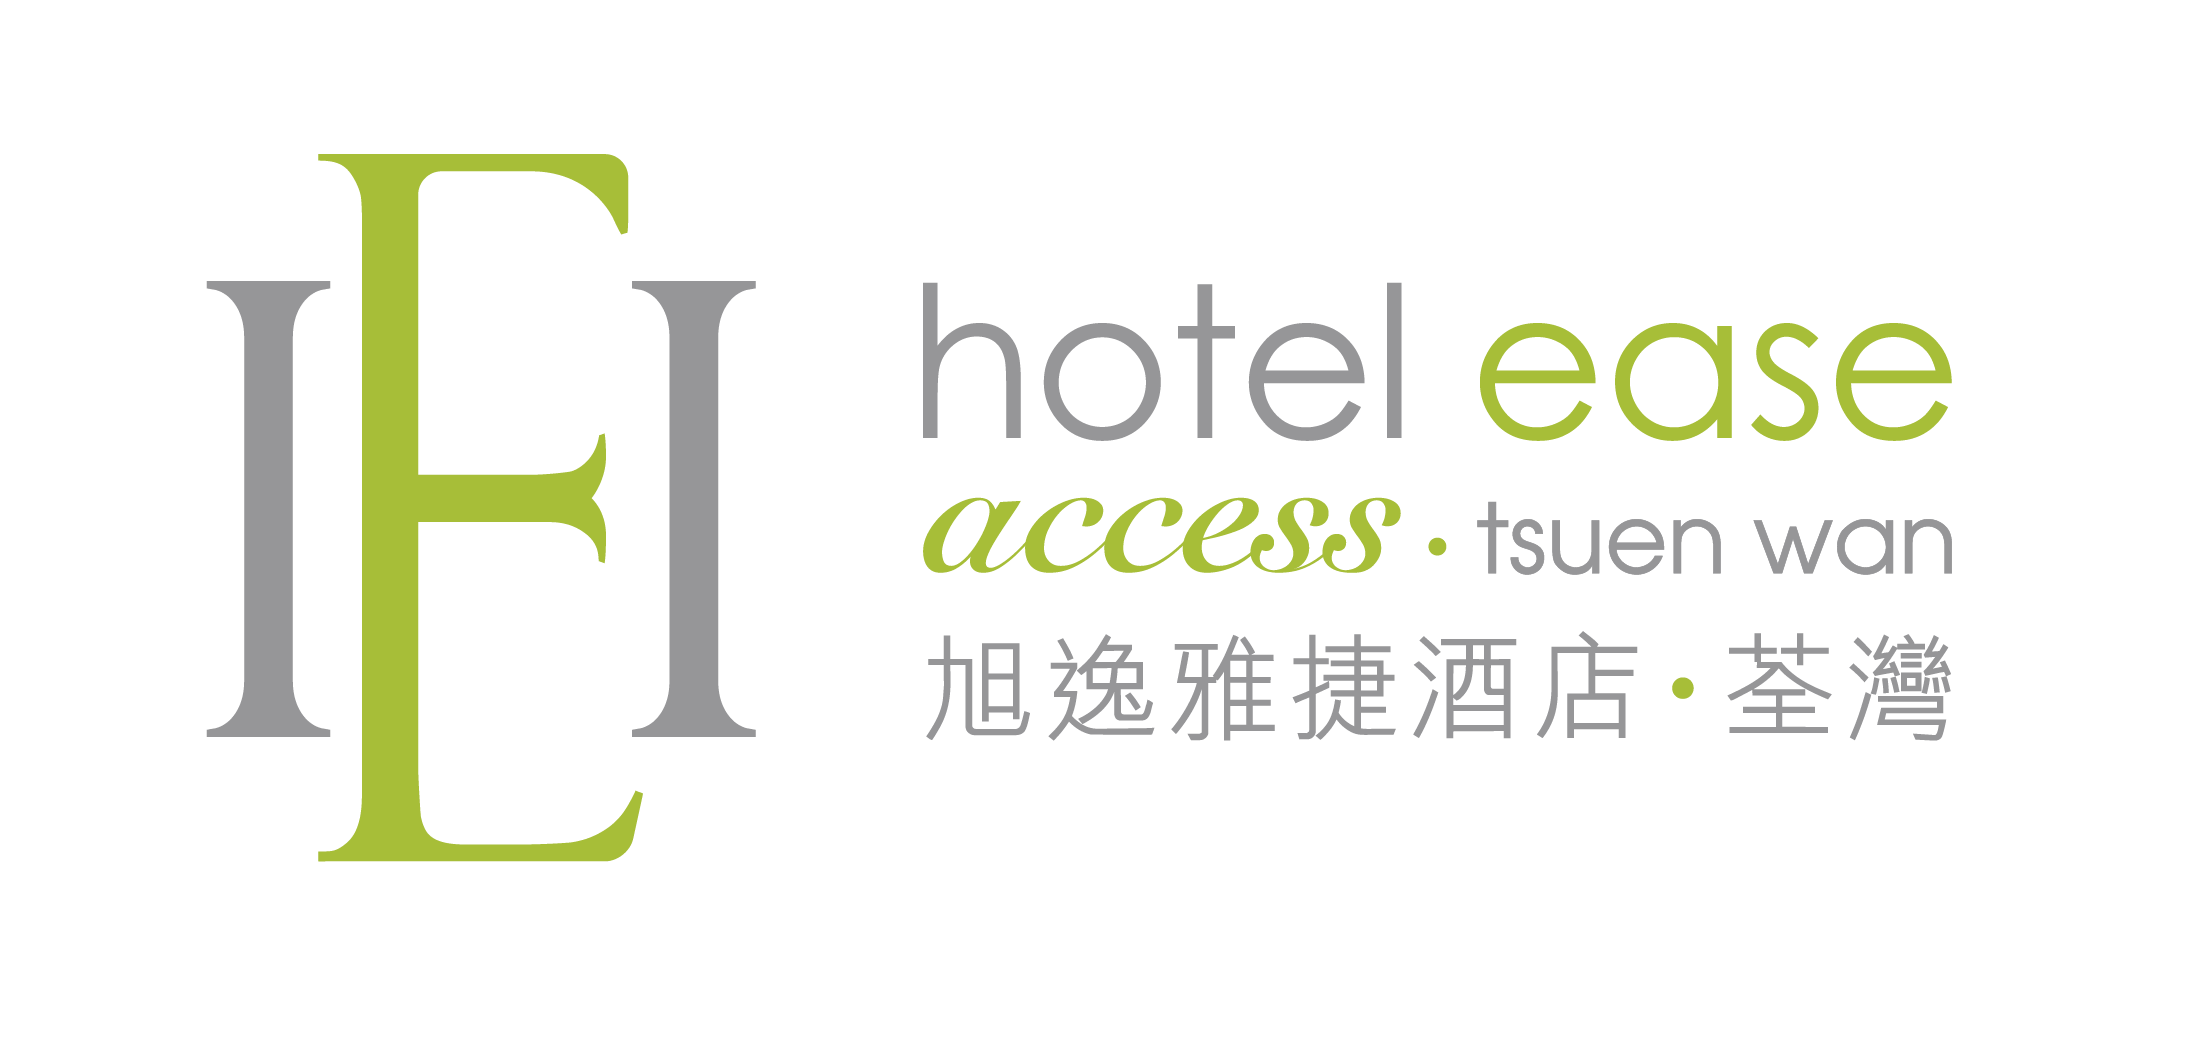 1cfc5644b4c Heart of Kwai Chung Accessing all you need for your Hong Kong stay just got  a whole lot easier.